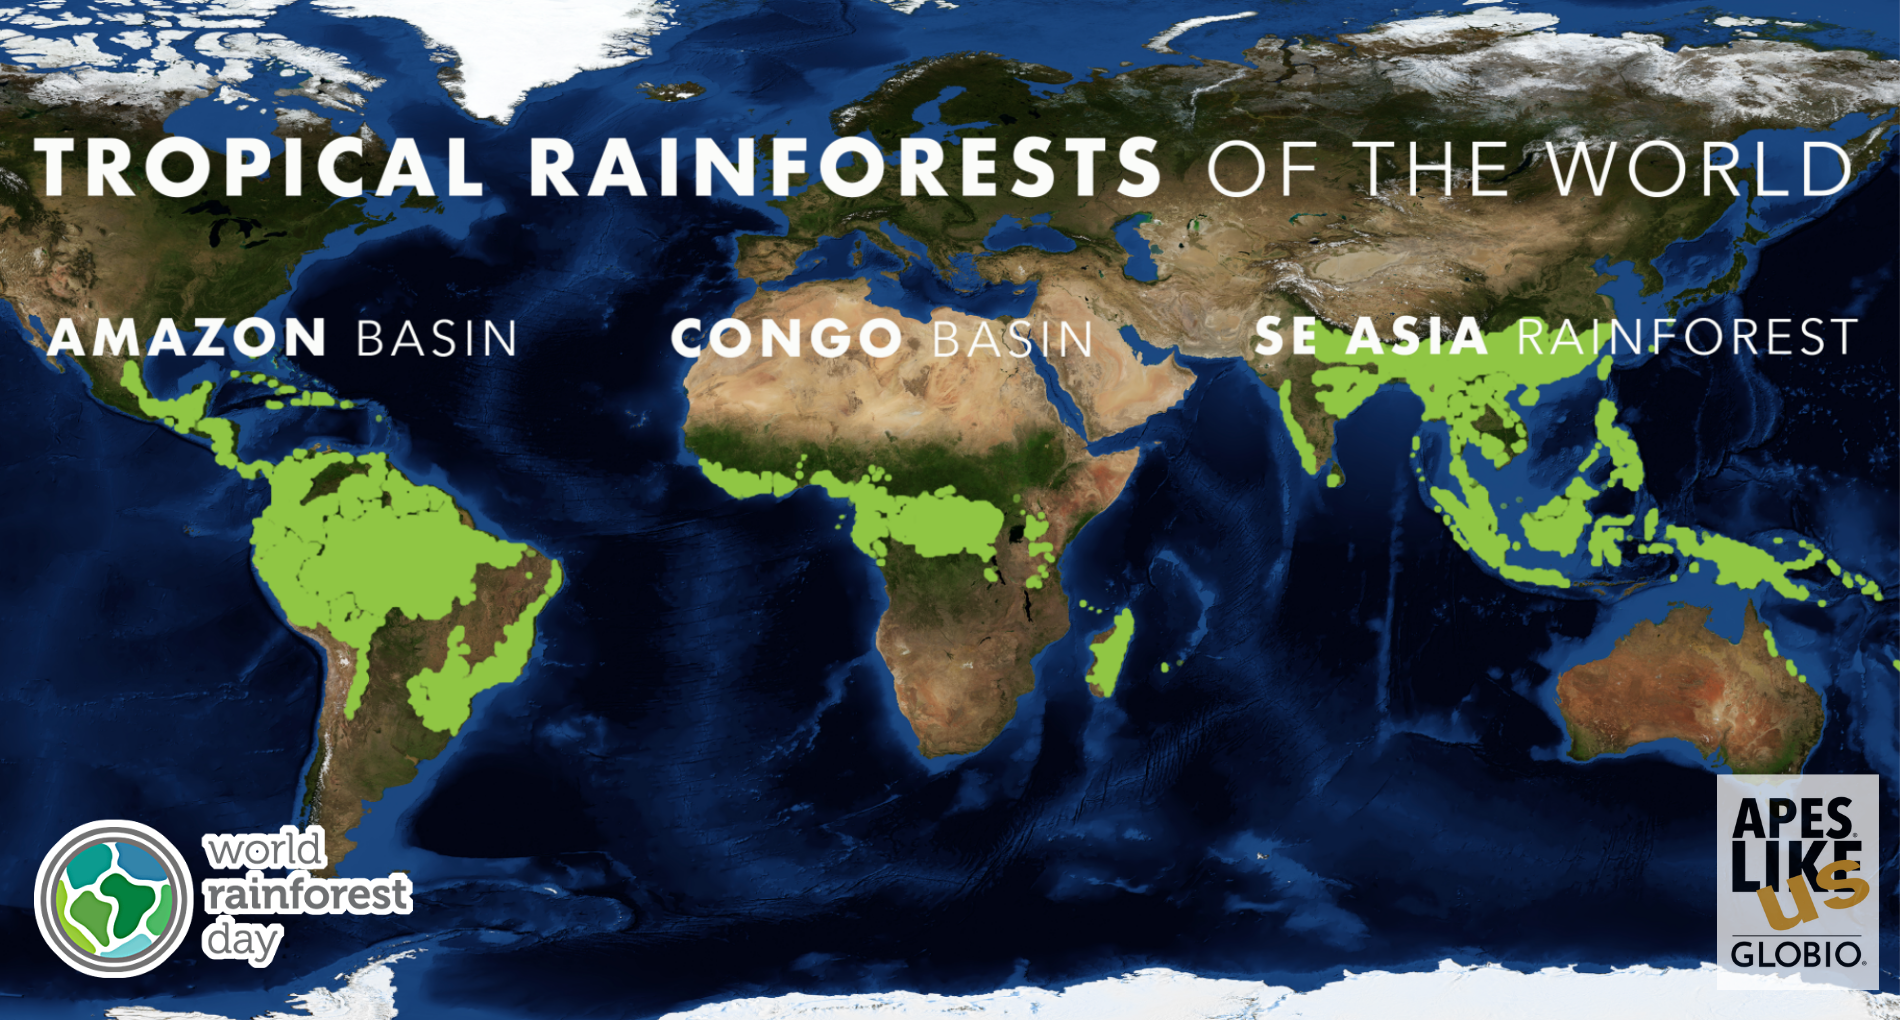 Map of Tropical Rainforest Range around the World